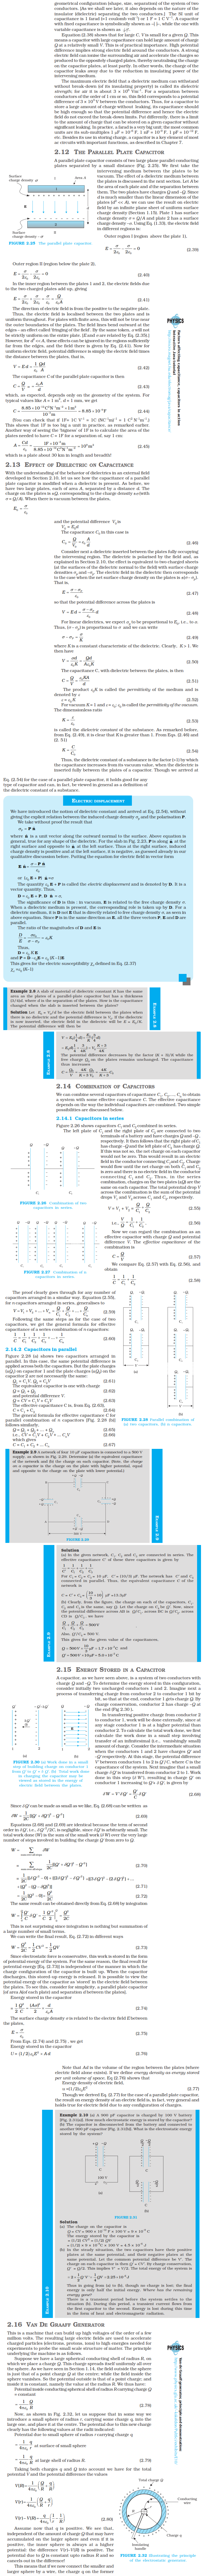 NCERT Class XII Physics Chapter 2 - Electrostatic Potential and Capacitance